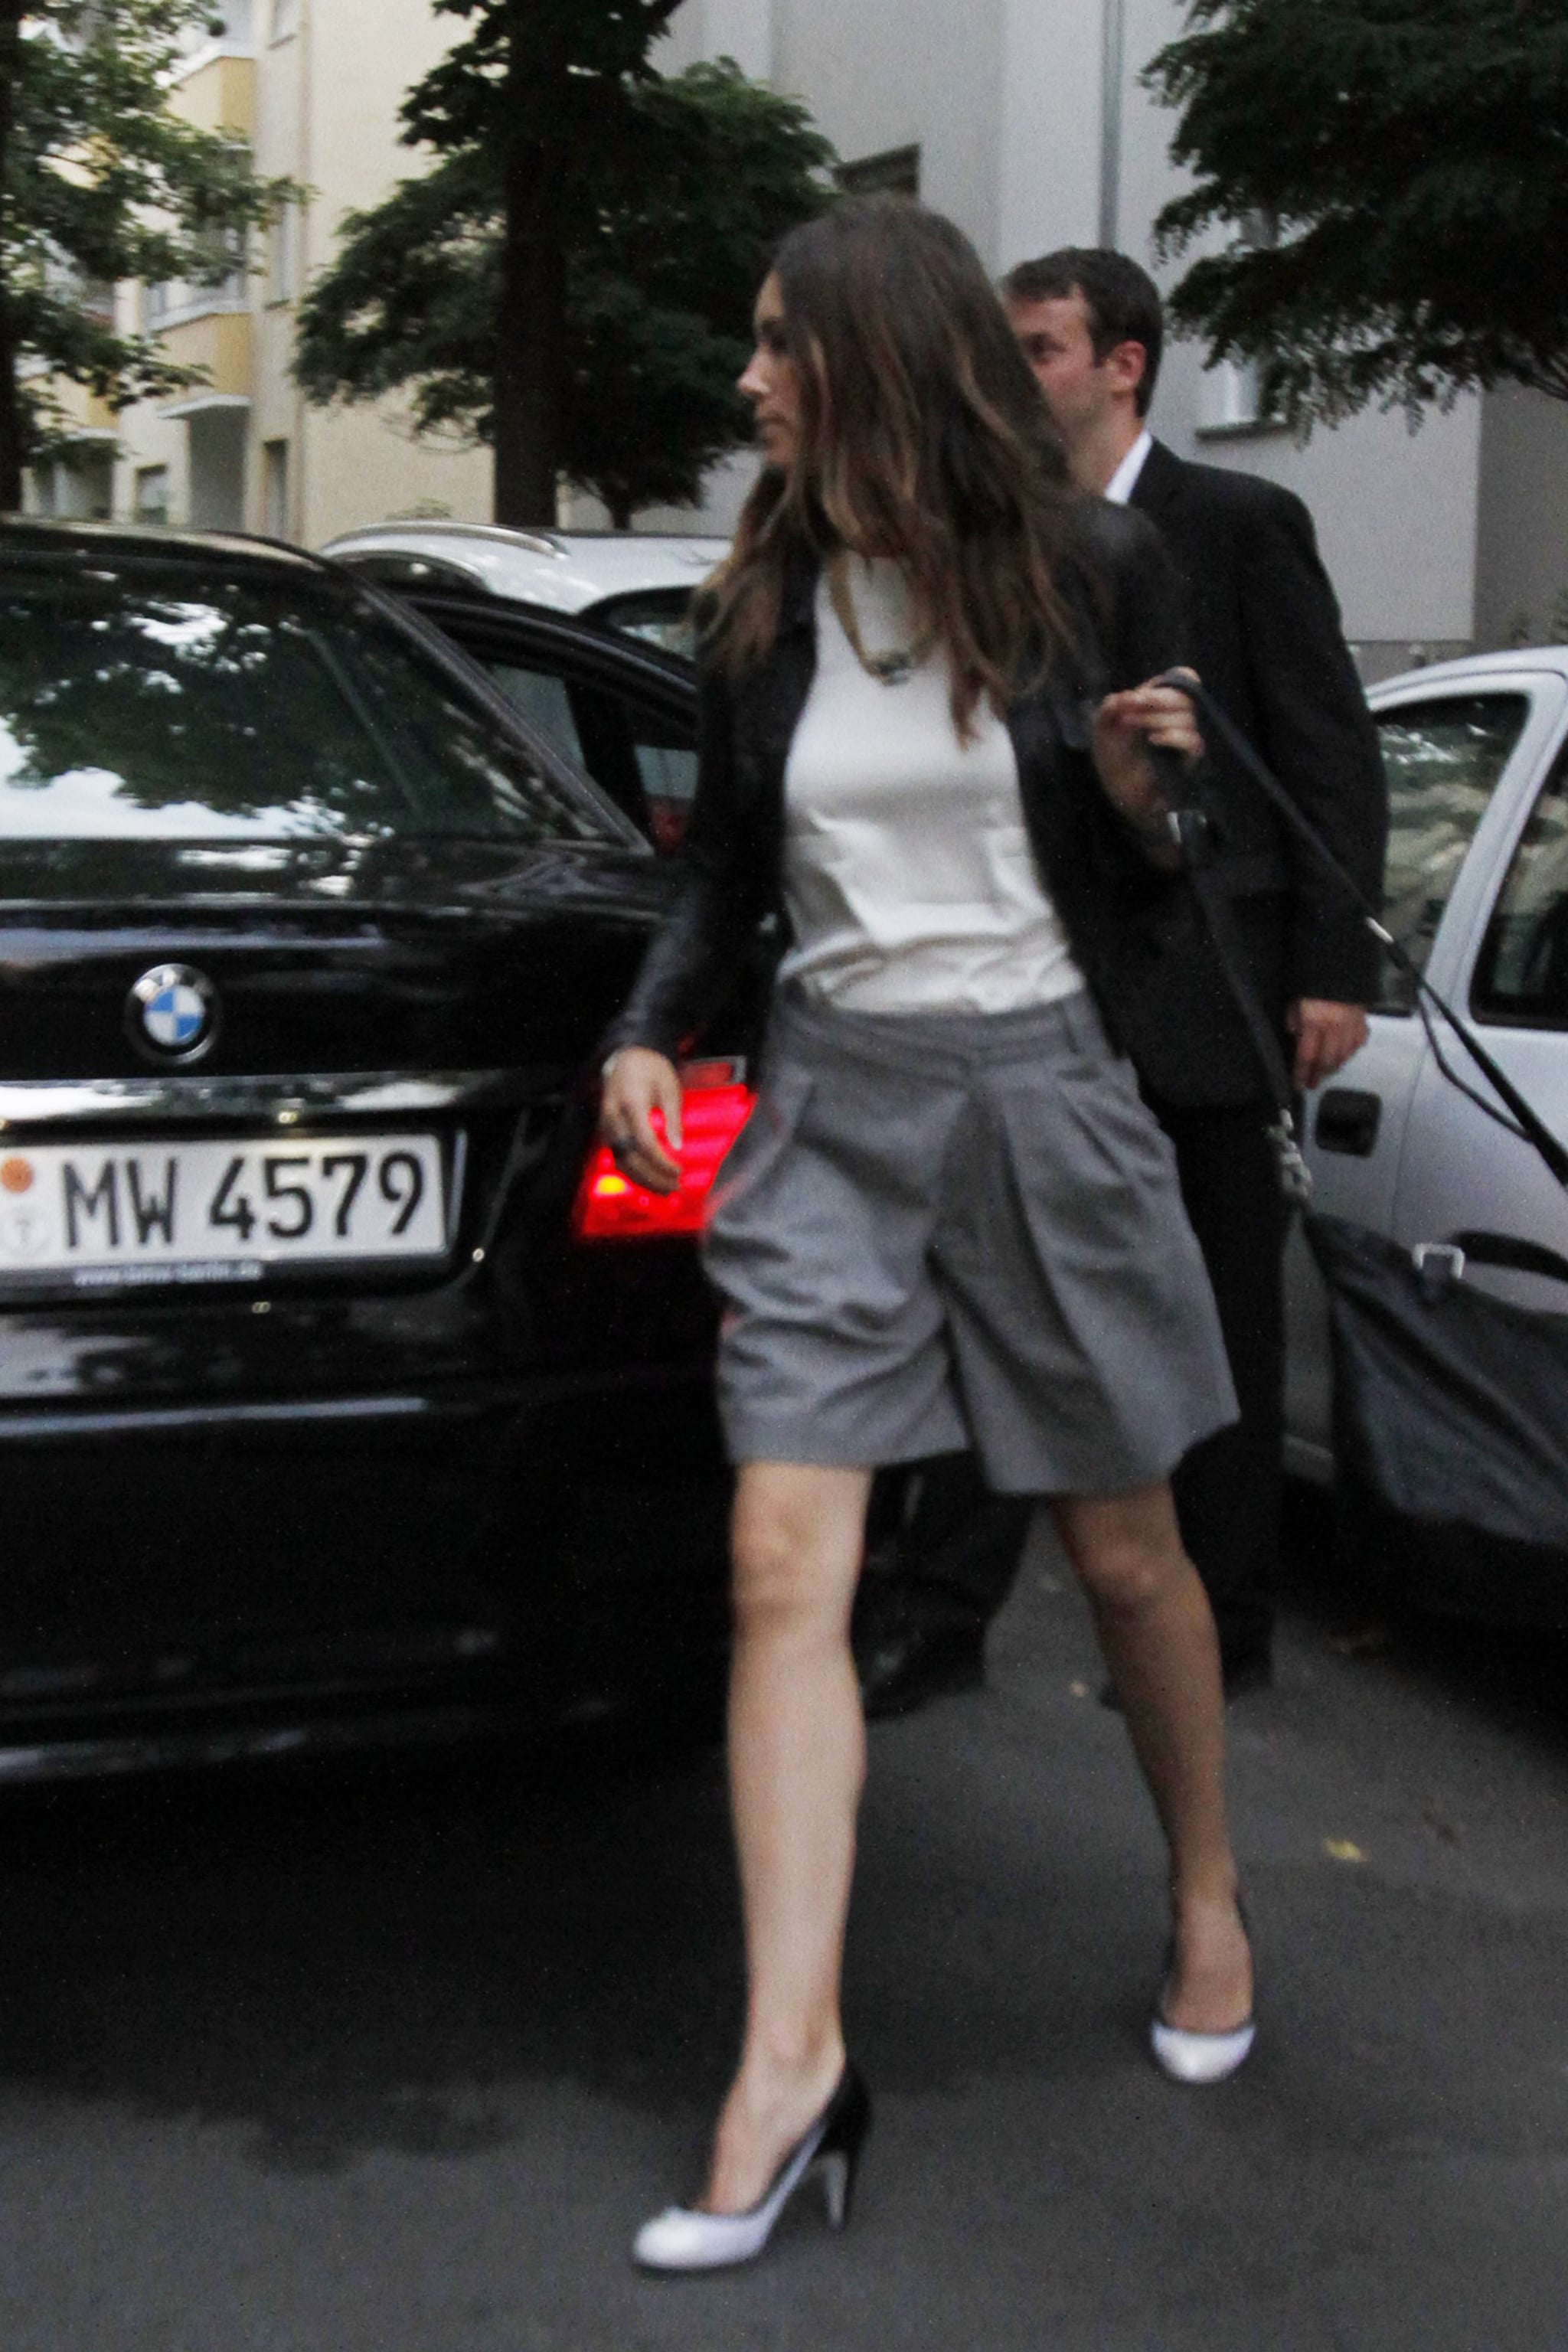 Another street shot, this time in funky gray shorts and black-and-white pumps.